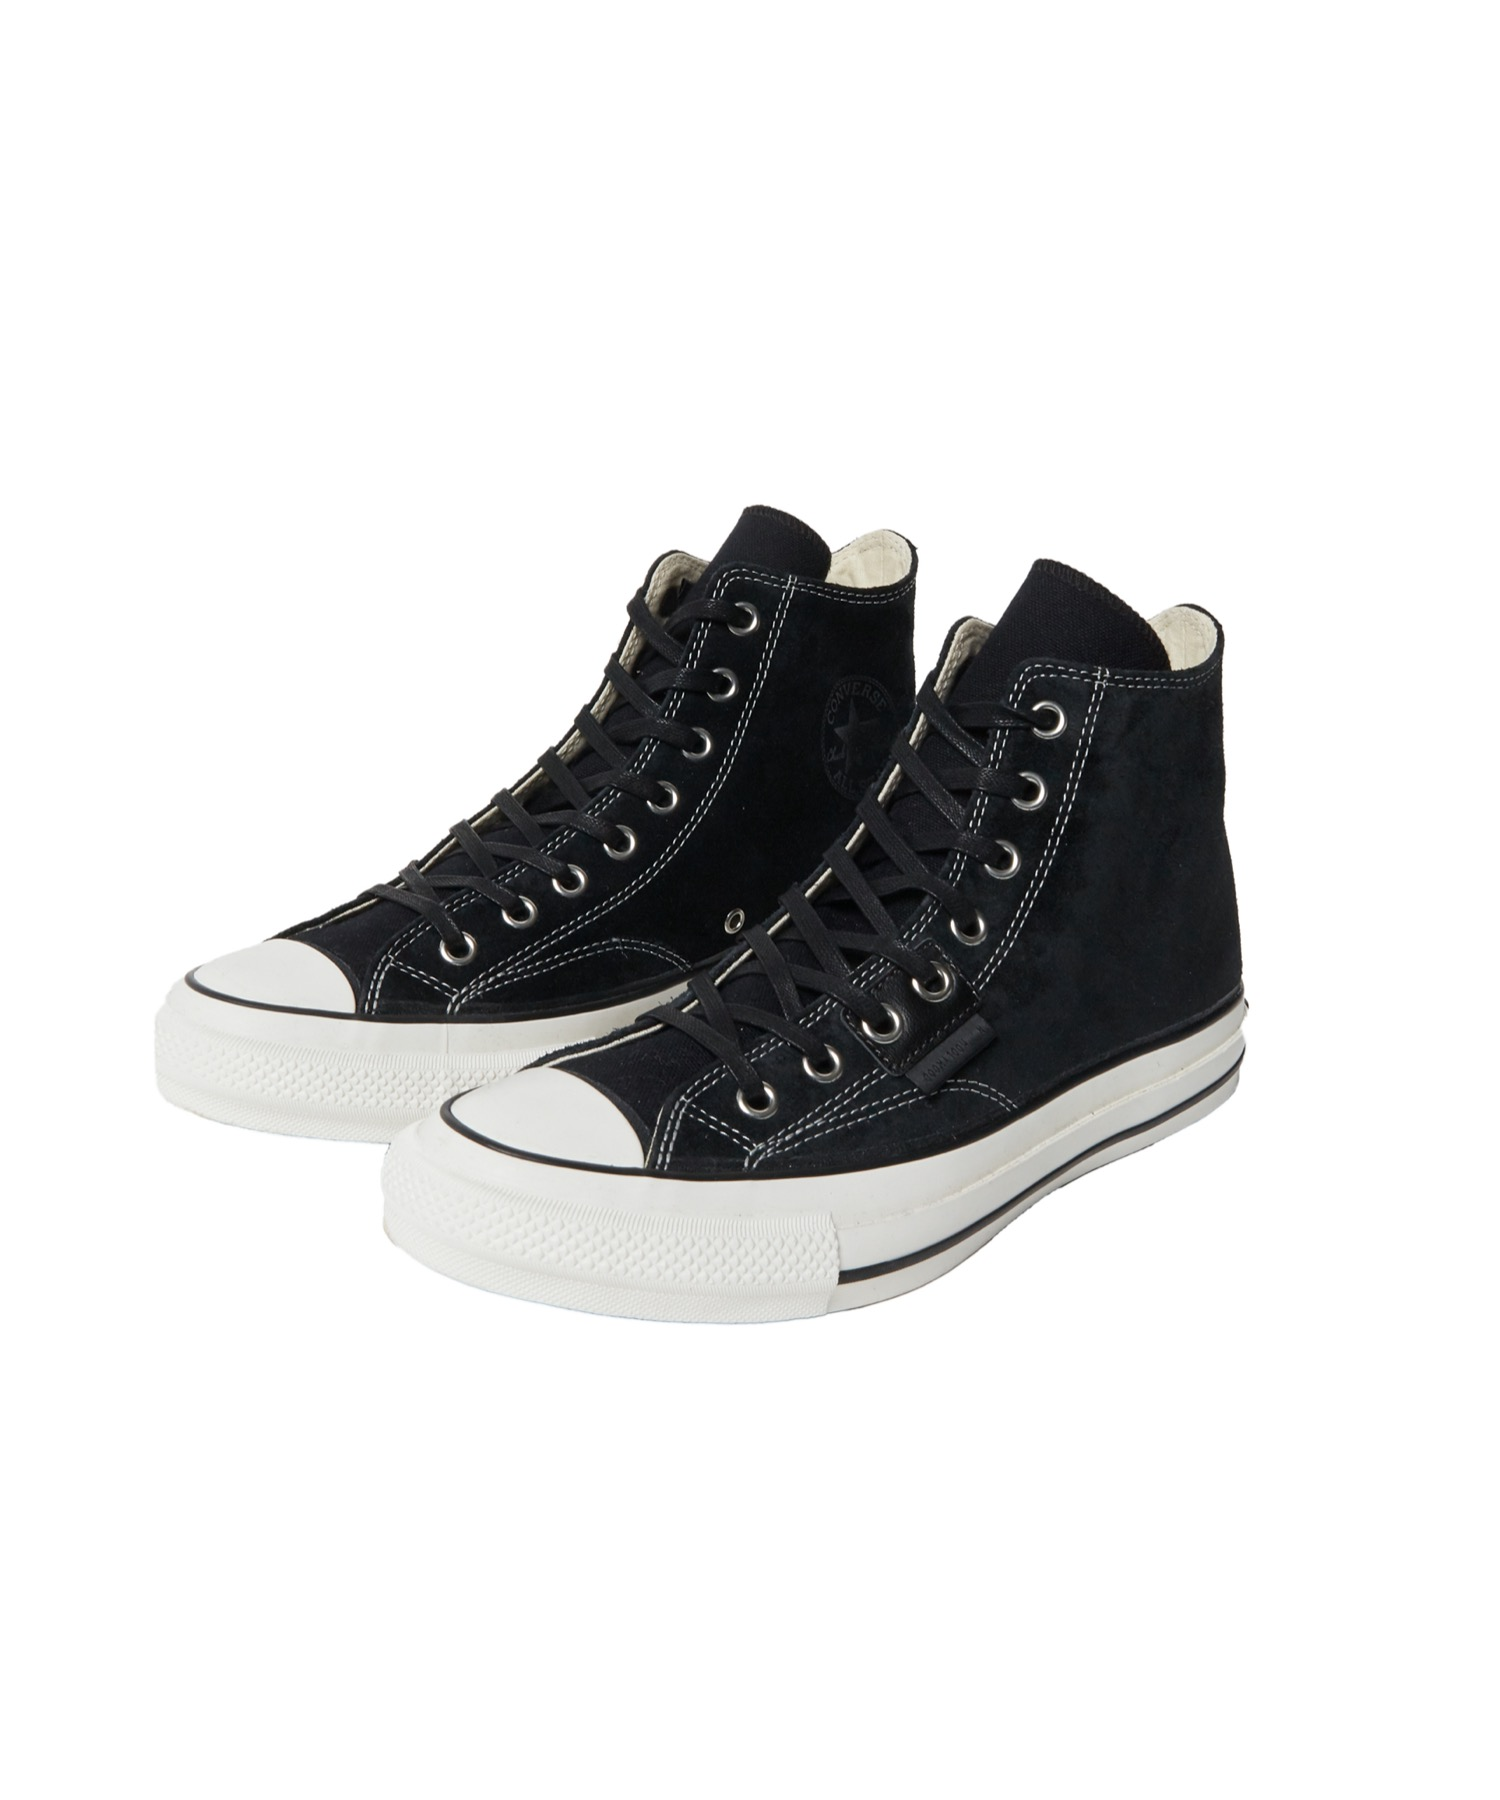 【N.HOOLYWOOD COMPILE × CONVERSE ADDICT】